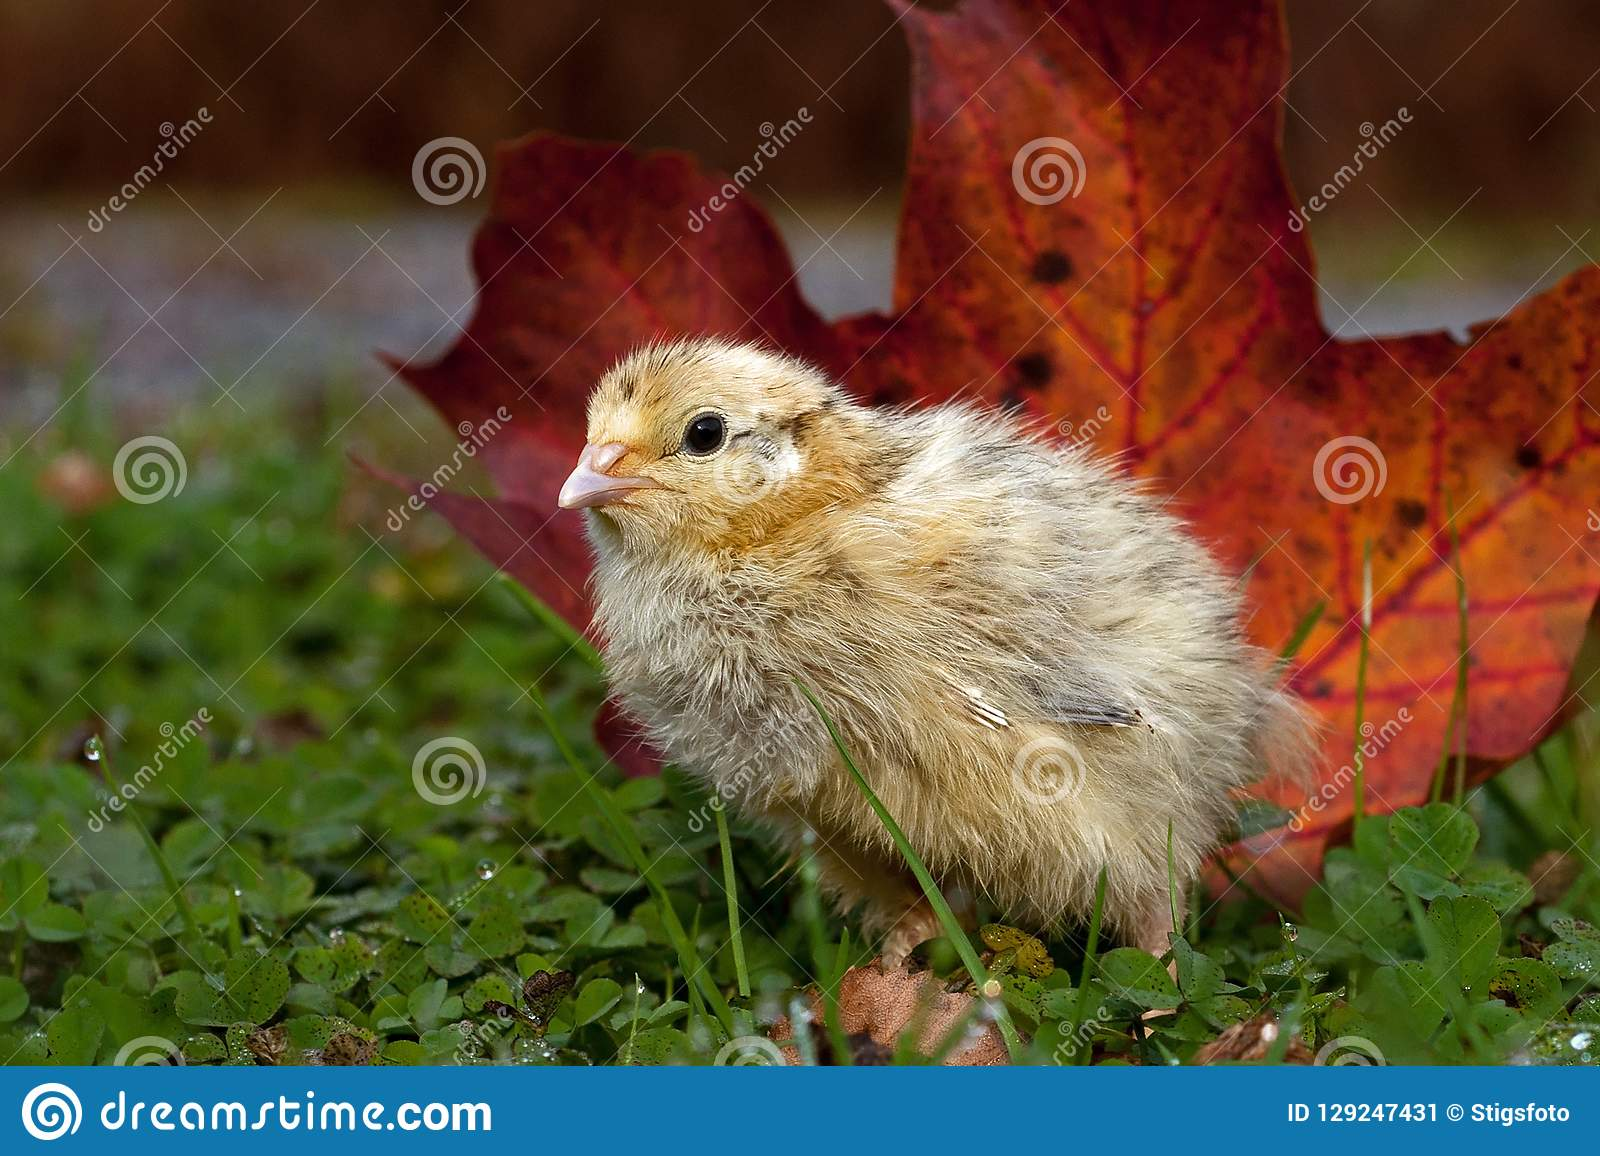 Five days old quail, Coturnix japonica.....photographed in nature